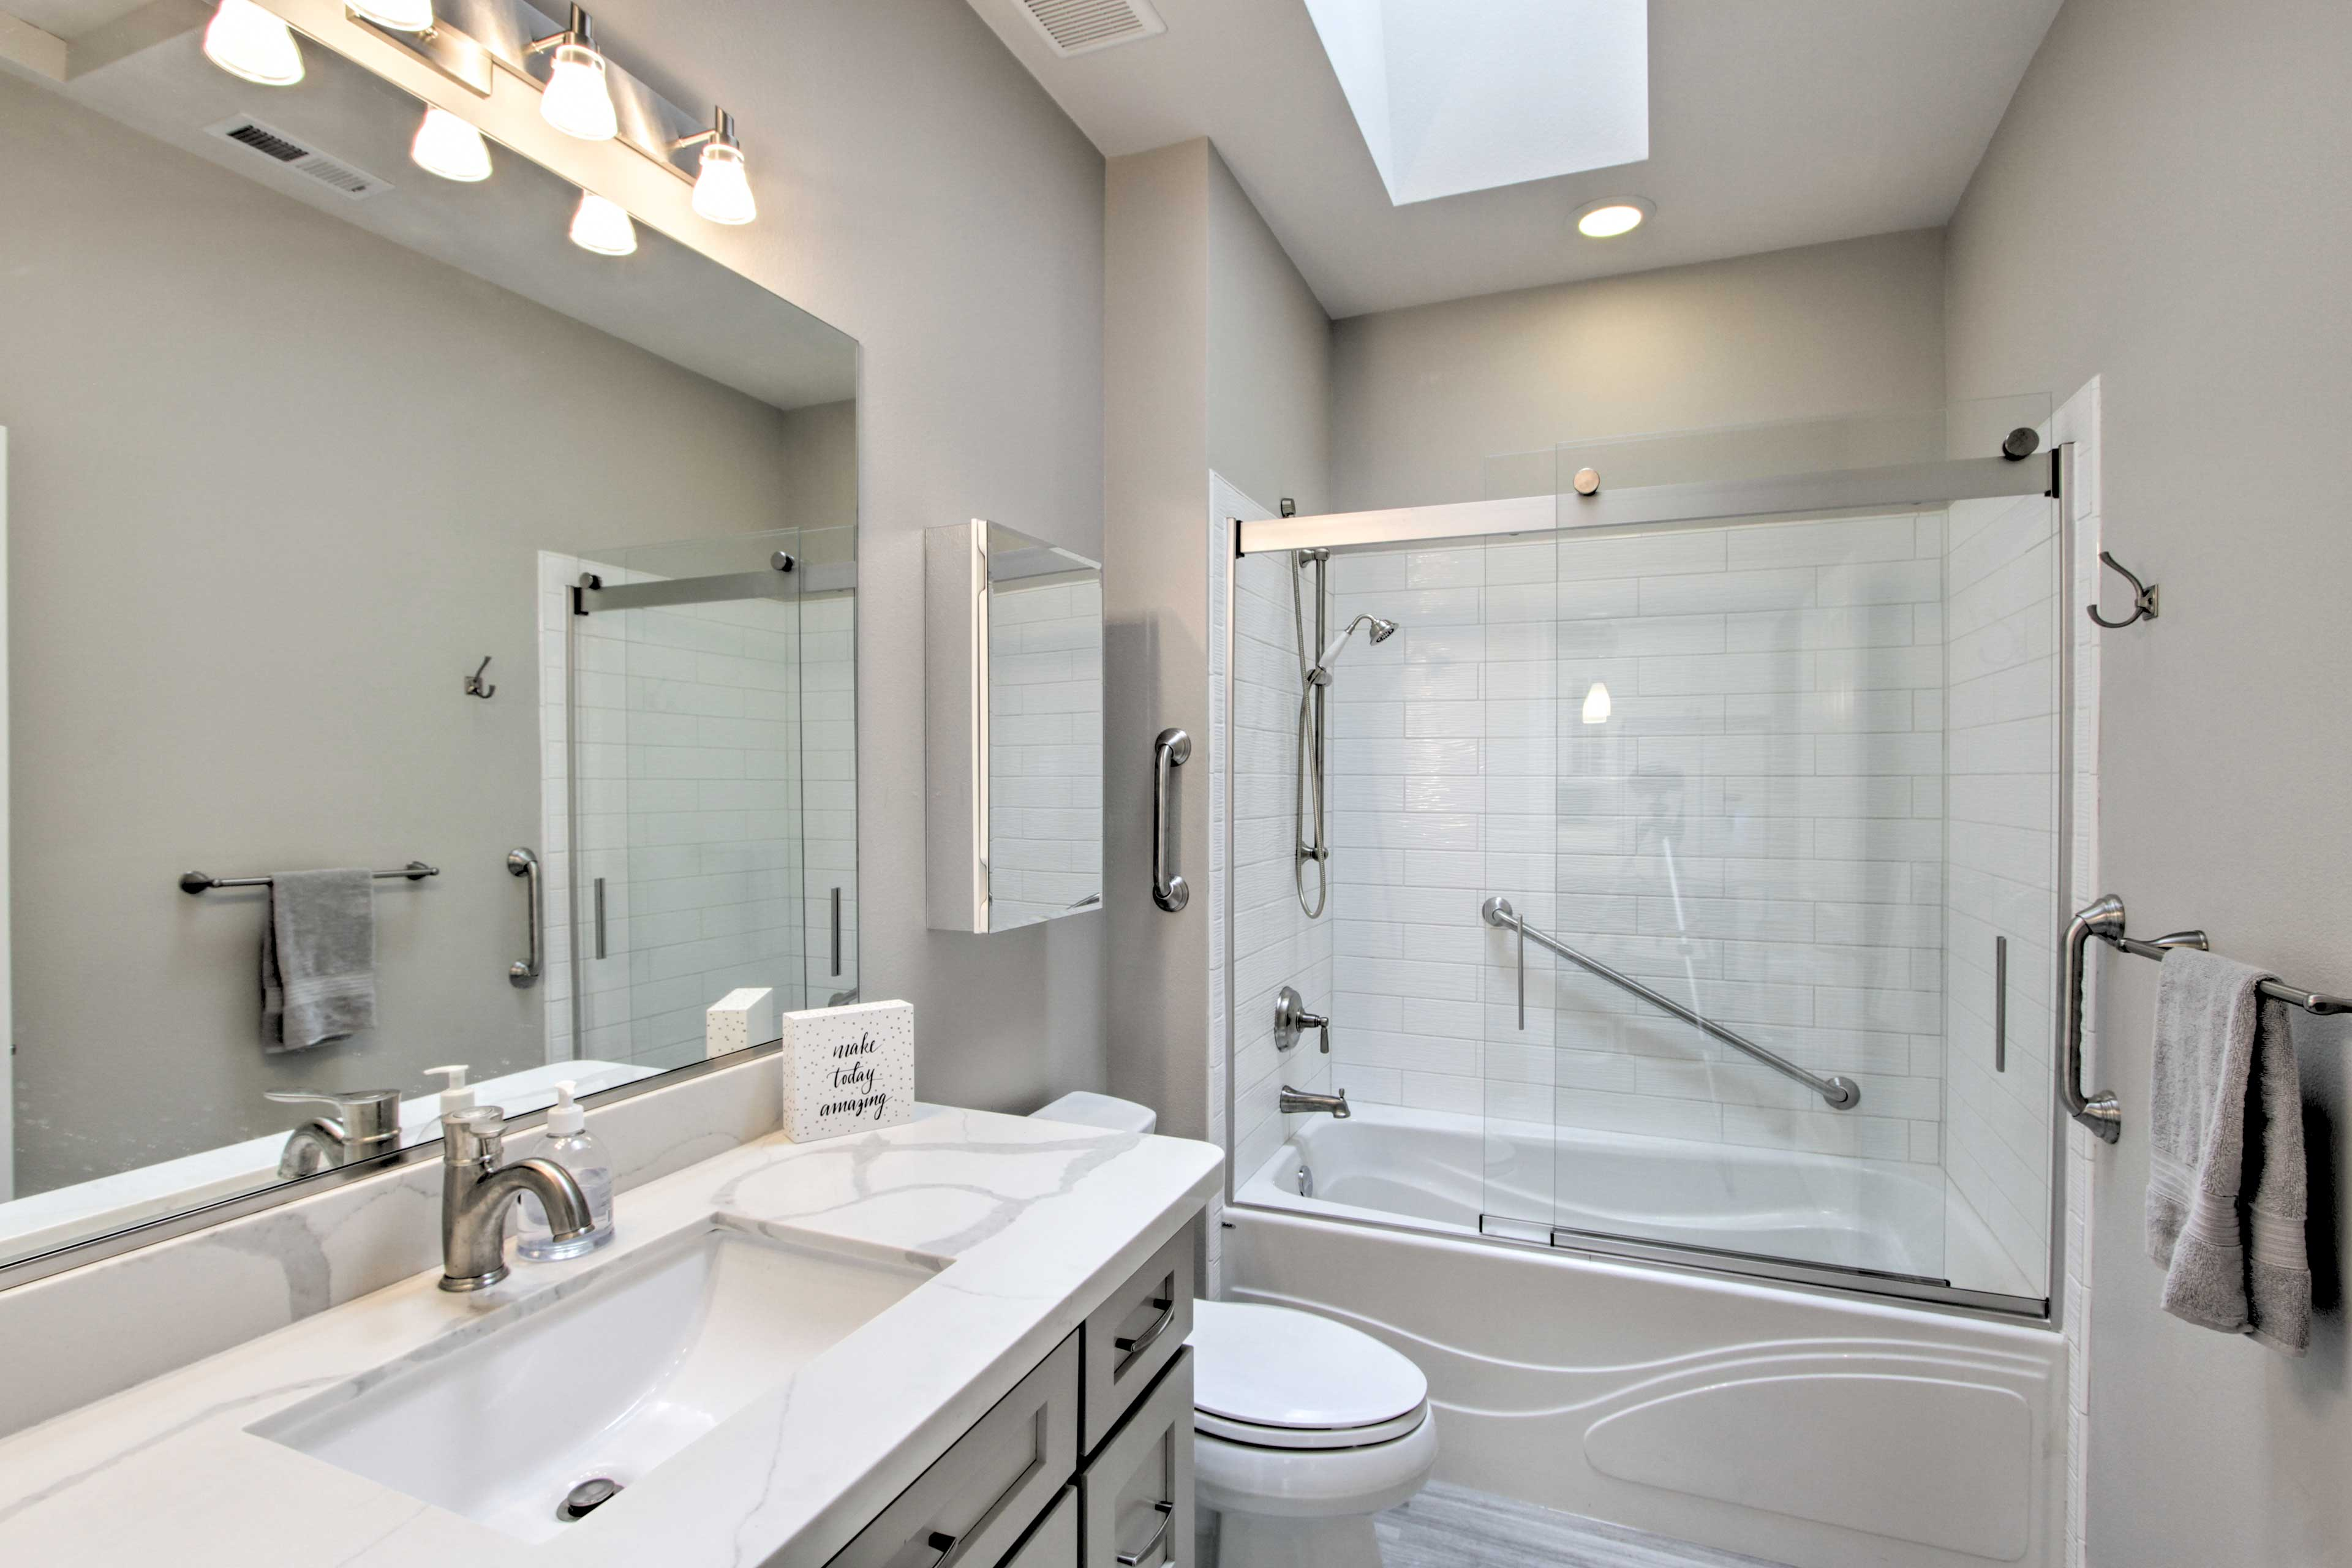 A second pristine bathroom offers added privacy for your crew!